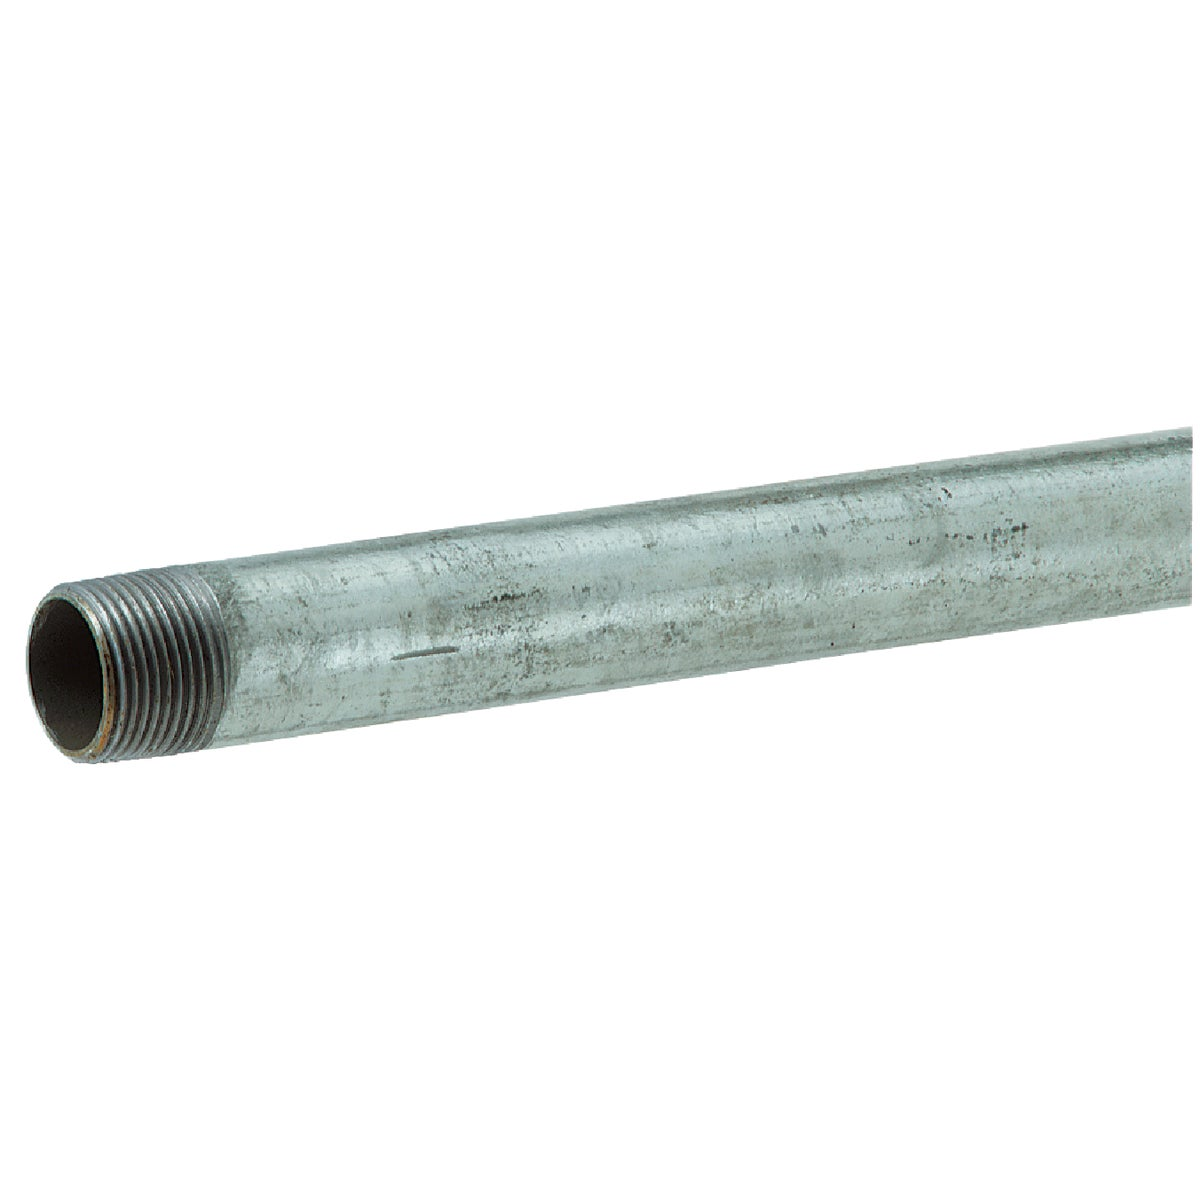 1-1/4X24GALV RDI-CT PIPE